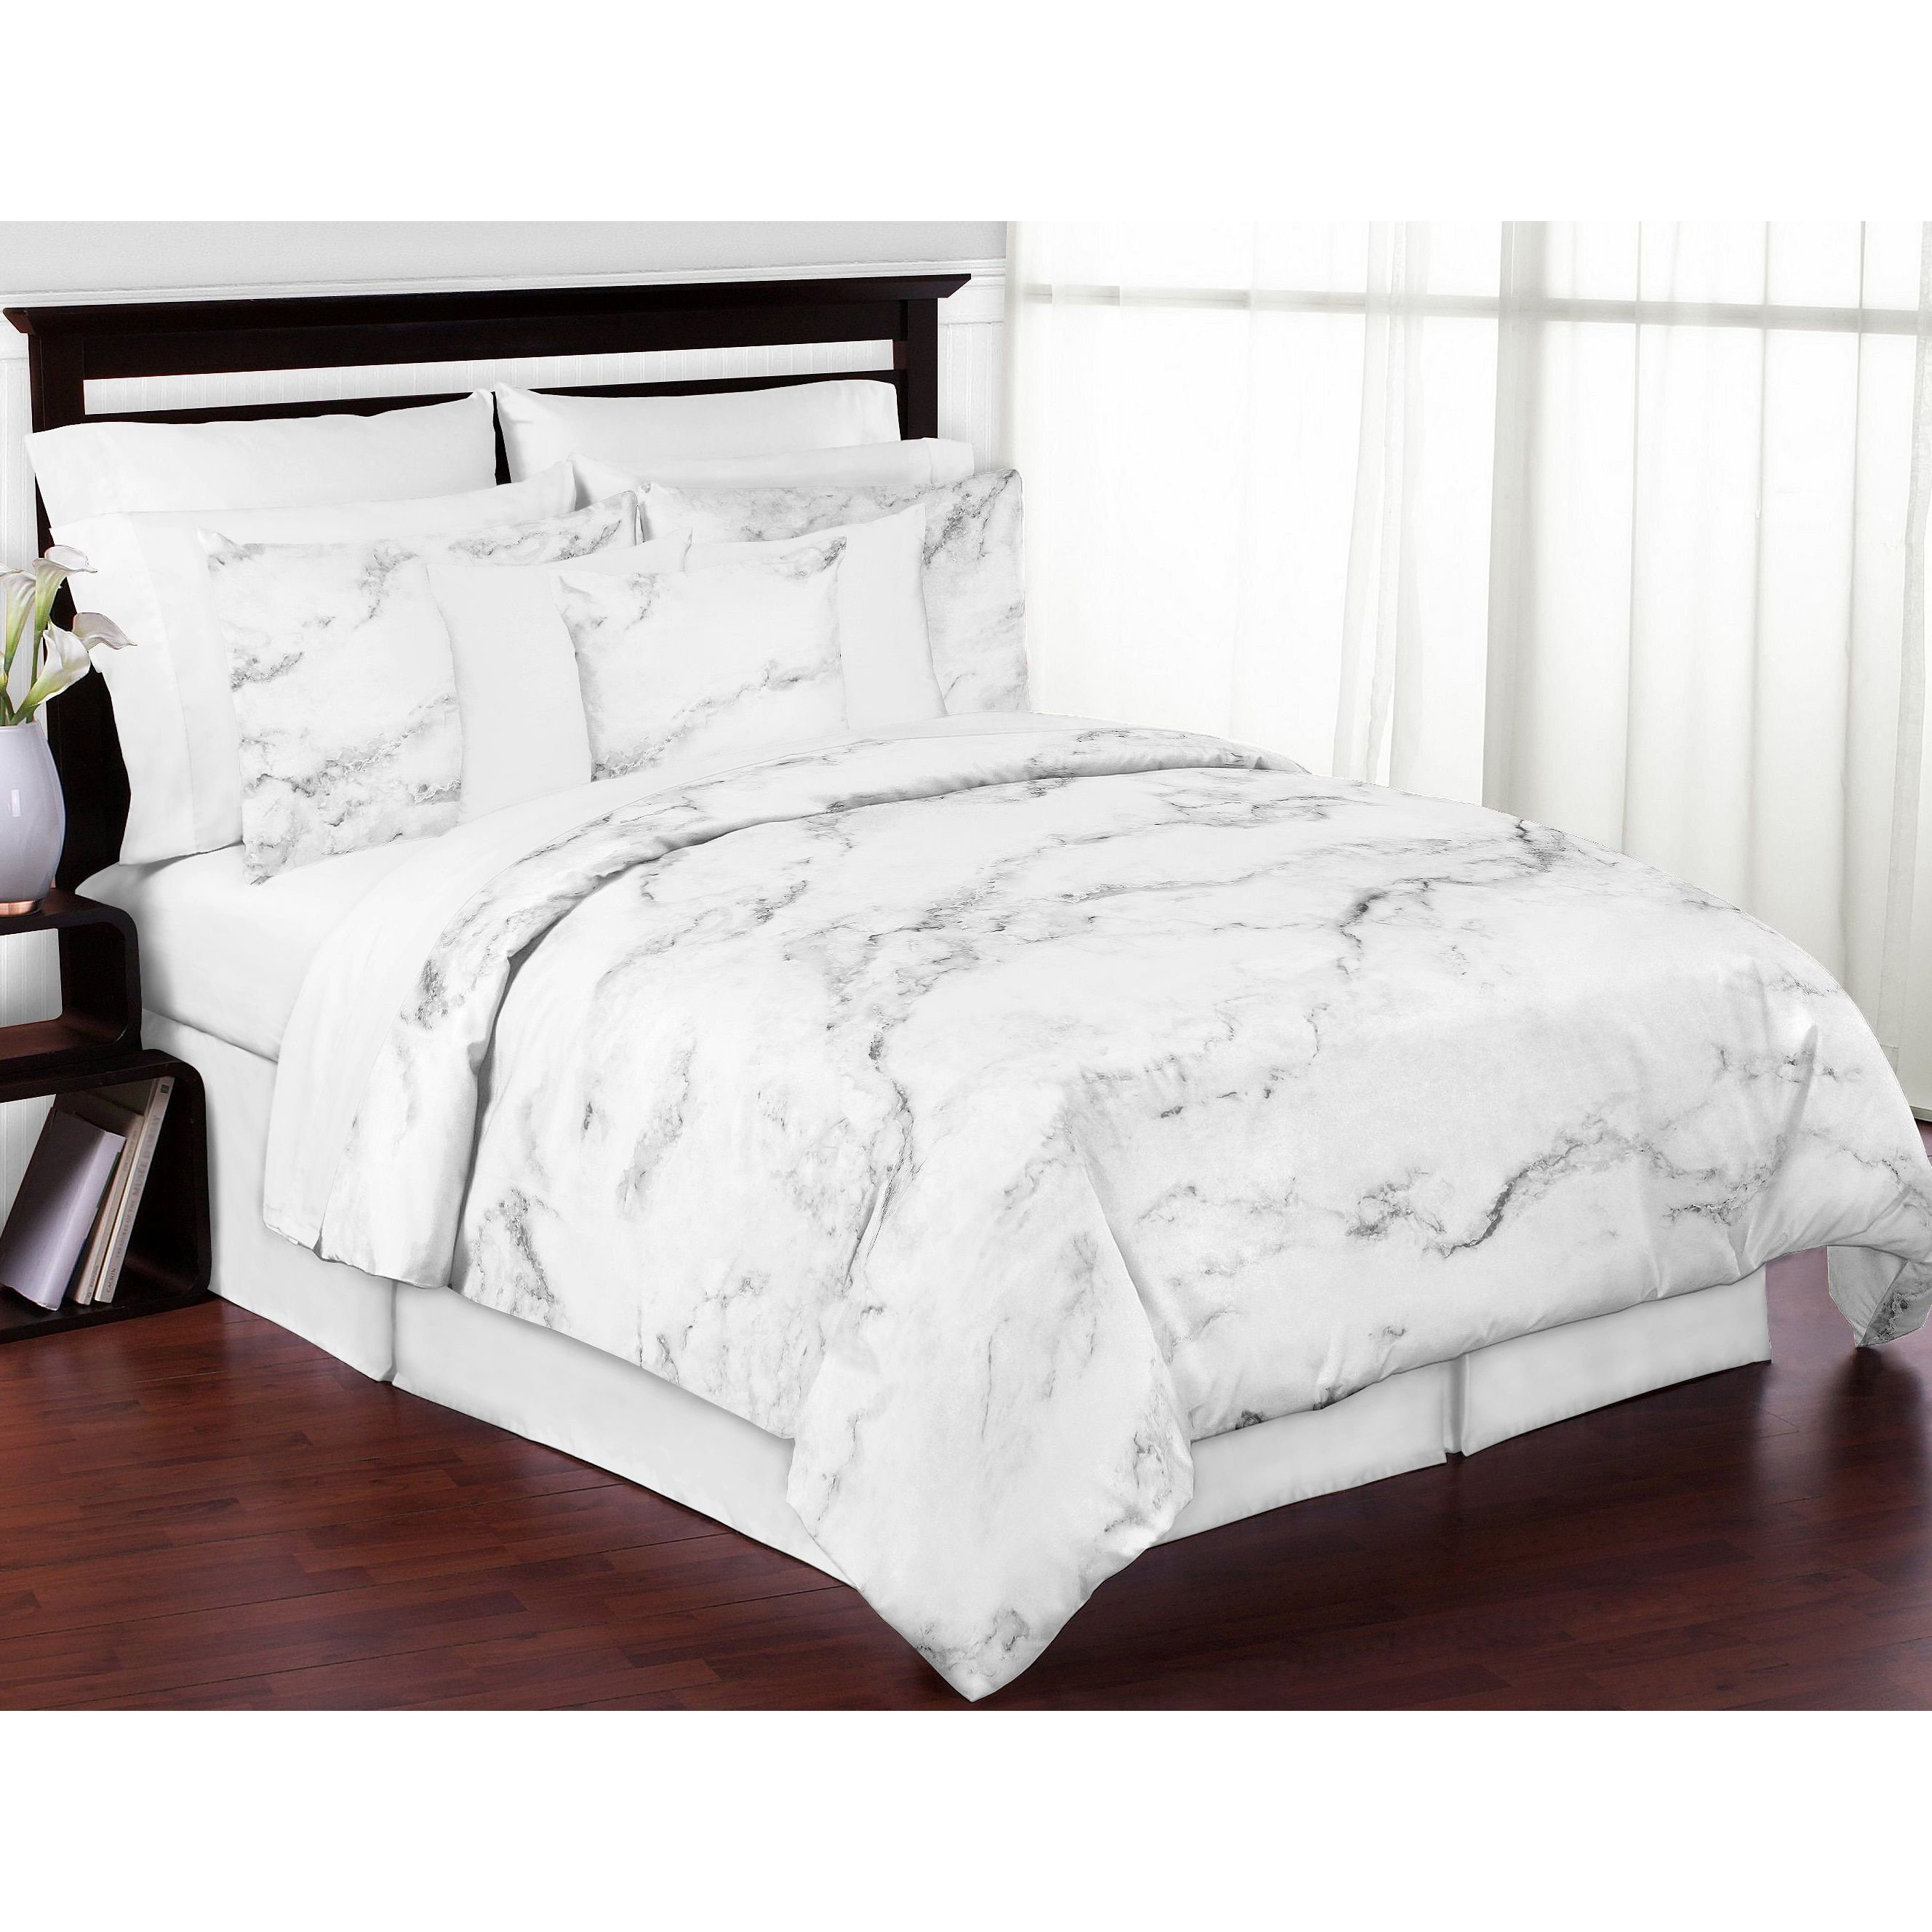 Attractive Sweet Jojo Designs And White Marble Collection 3 Piece Comforter Set